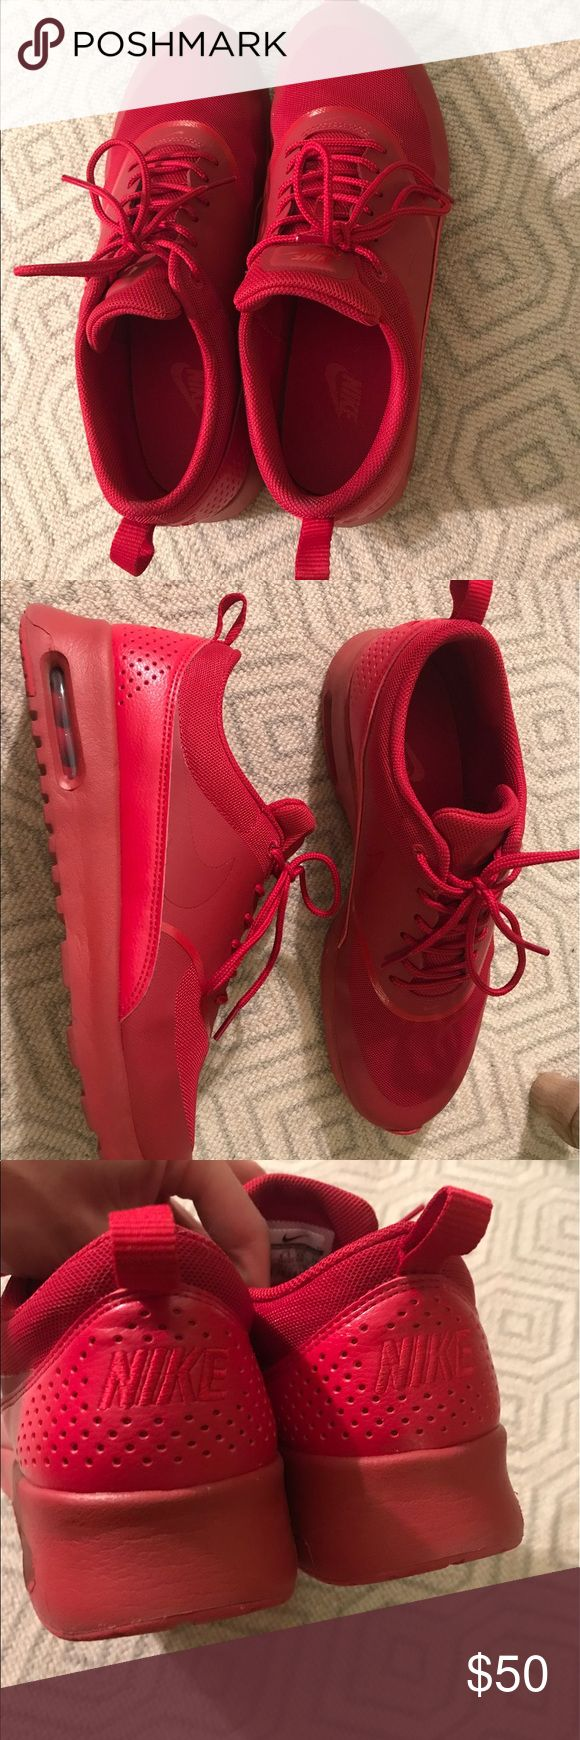 Nike Red Shoes Women's Size 11 Worn 2x, like new condition, purchased in October 2016. No box. Nike Shoes Athletic Shoes